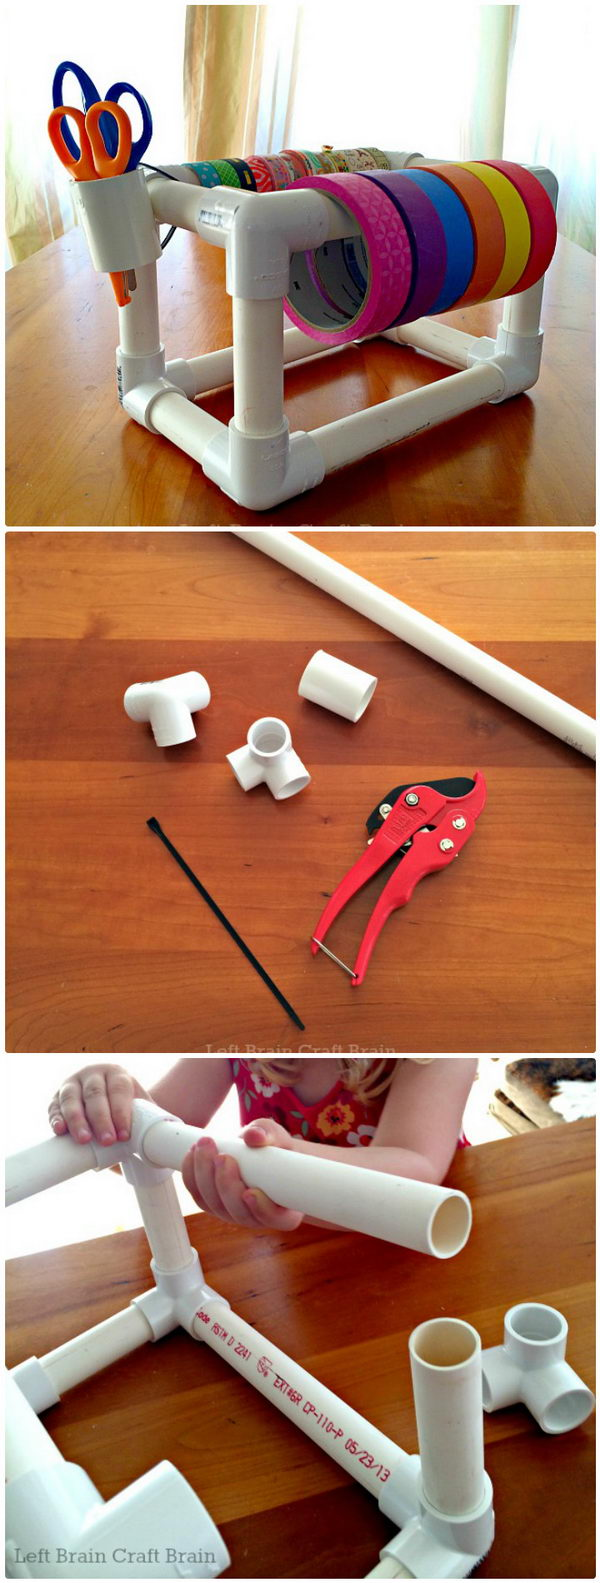 35 Cool Diy Projects Using Pvc Pipe 2017